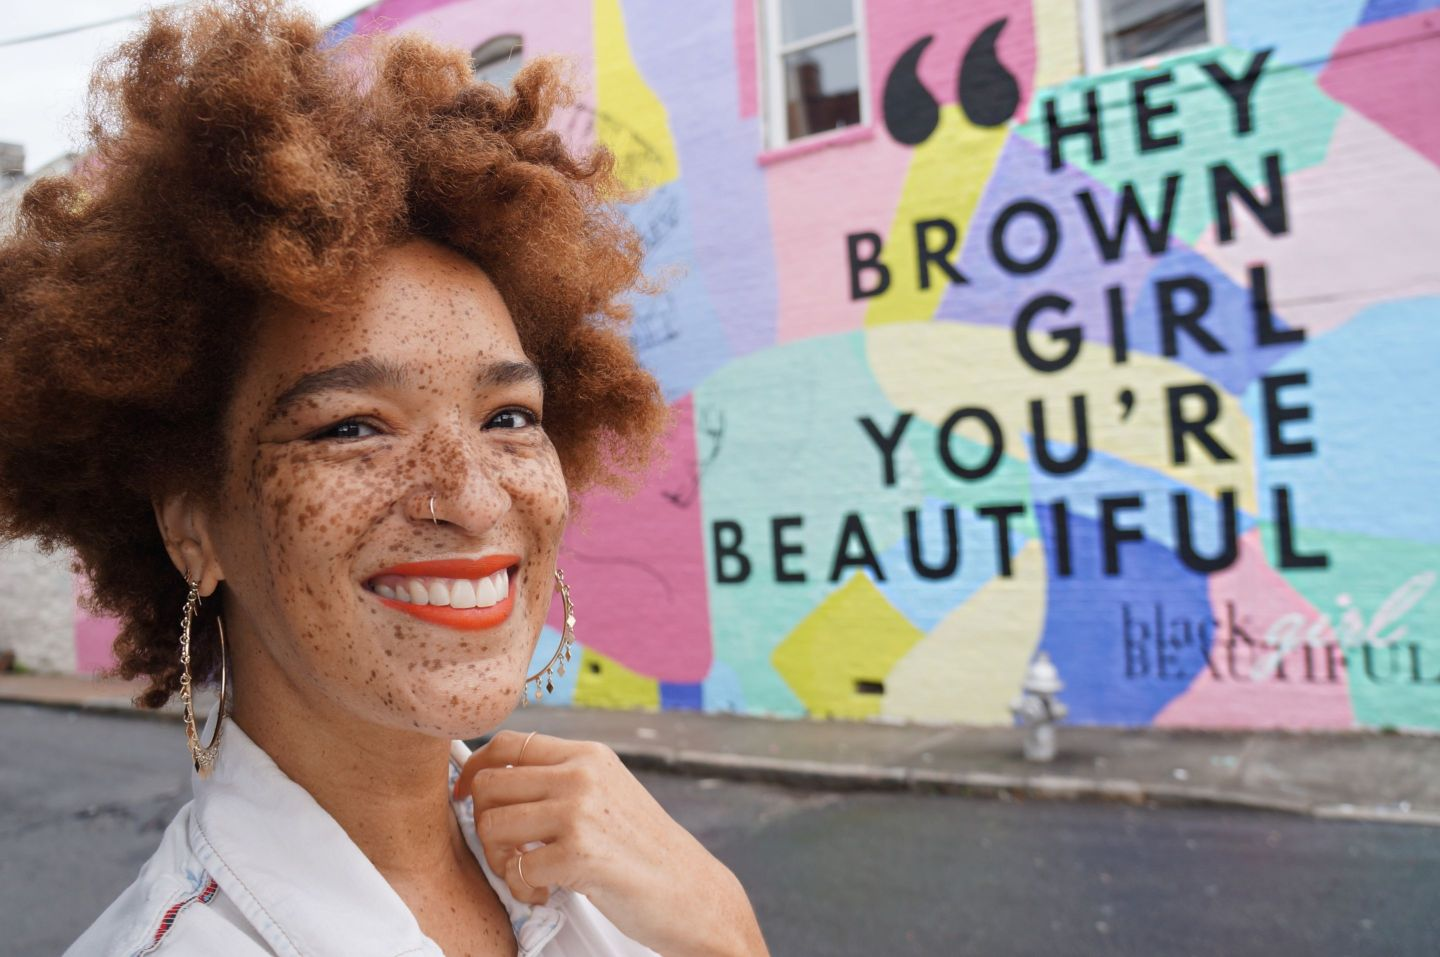 nikiaheybrowngirlmural-1440x957 Artist Celebrates Black Girl Magic Through Mural and Shares Her Favorite Black Women Owned Spots in ATL